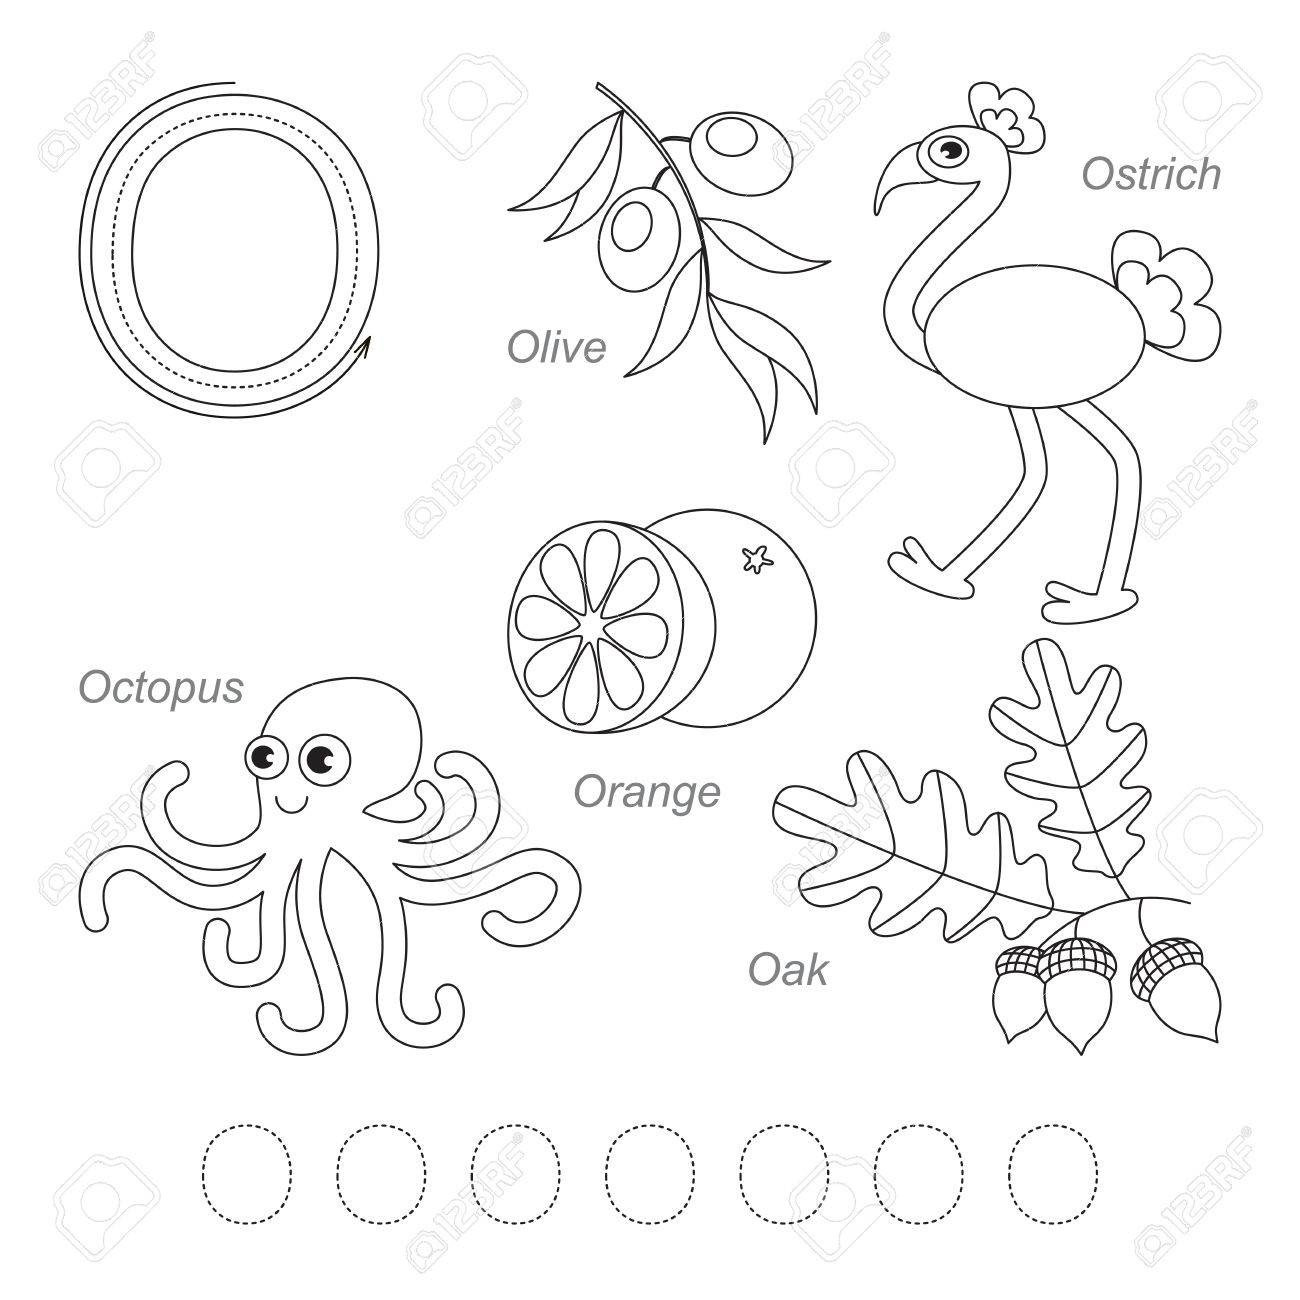 tracing worksheet for children full english alphabet from to z pictures letter o the colorless worksheets